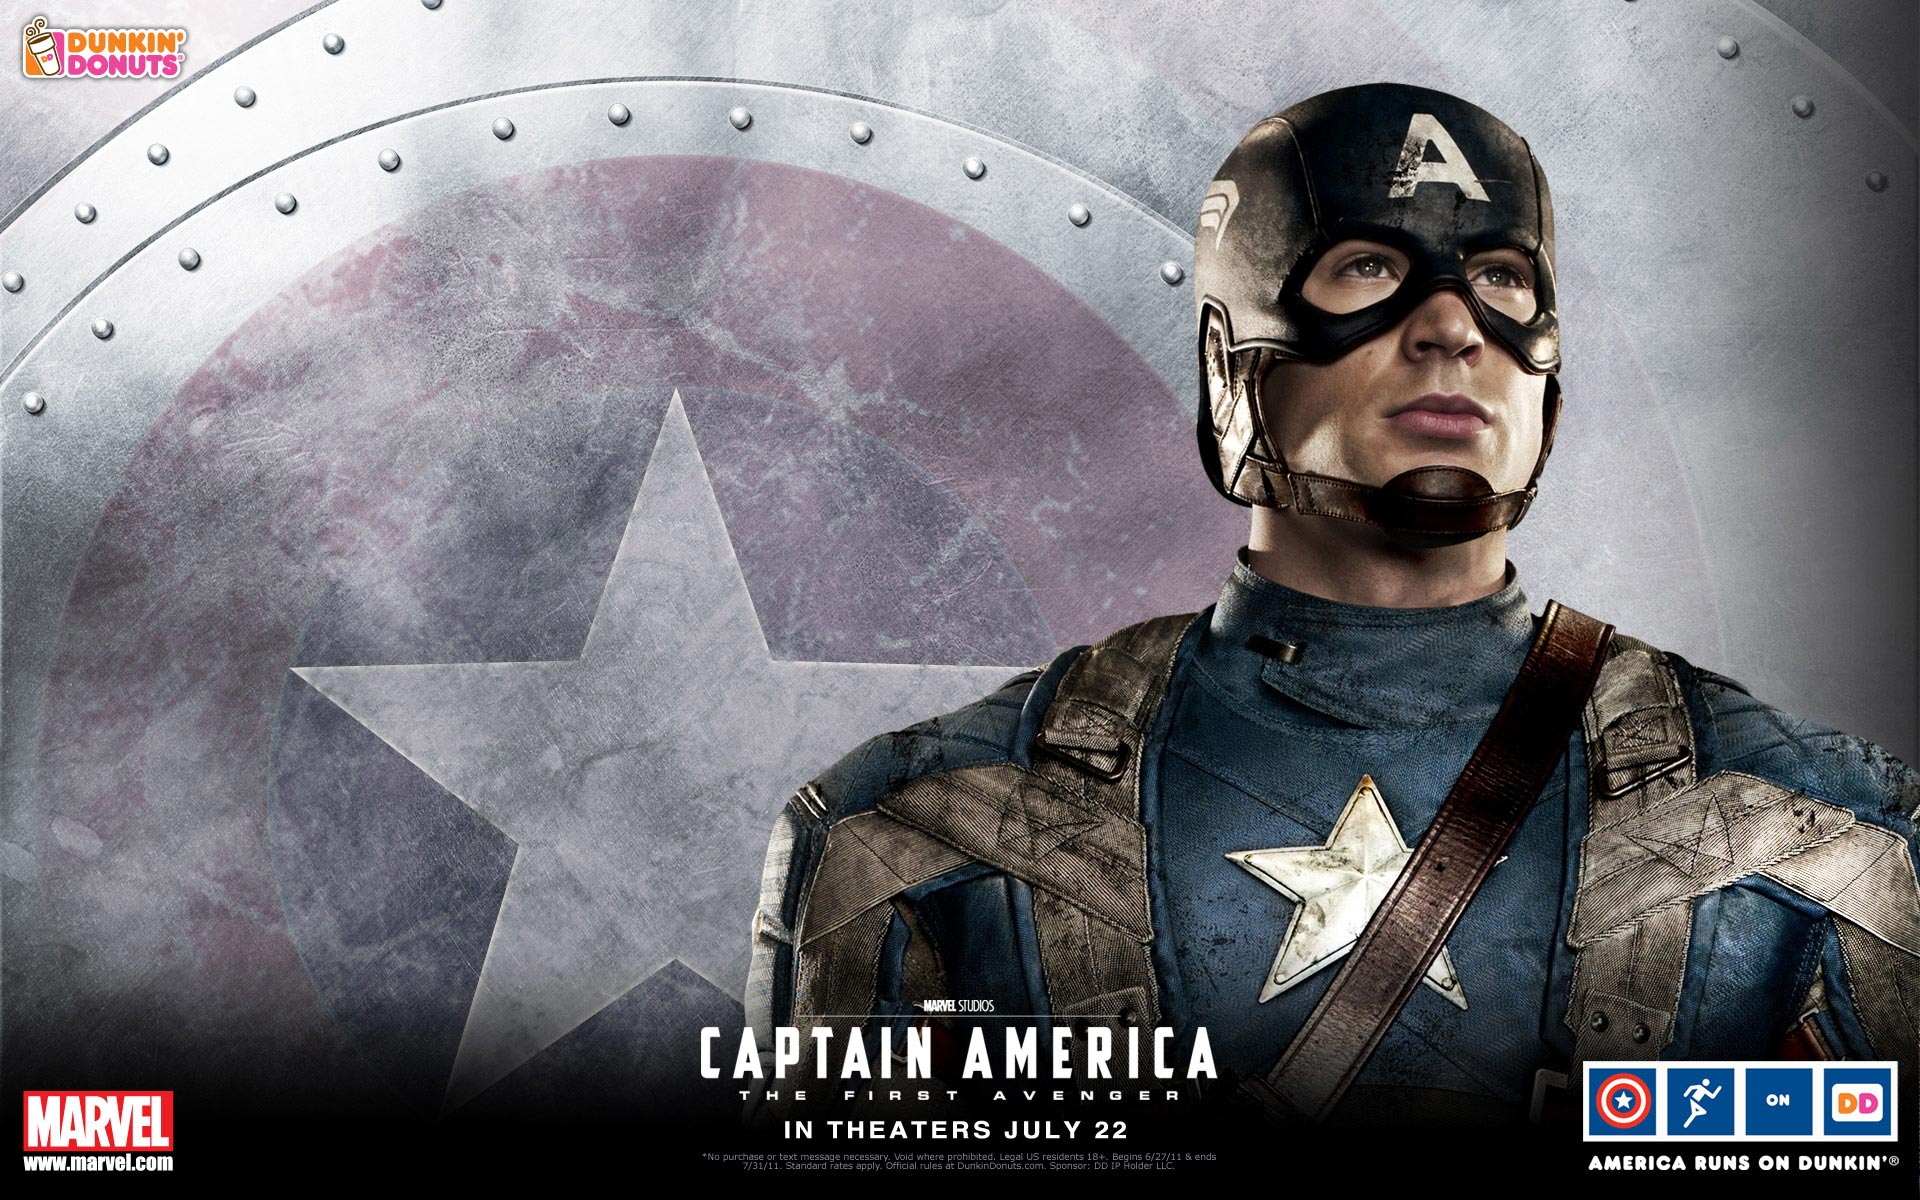 Captain-America-The-First-Avenger-High-Quality-HD-wallpaper-wpc5803223